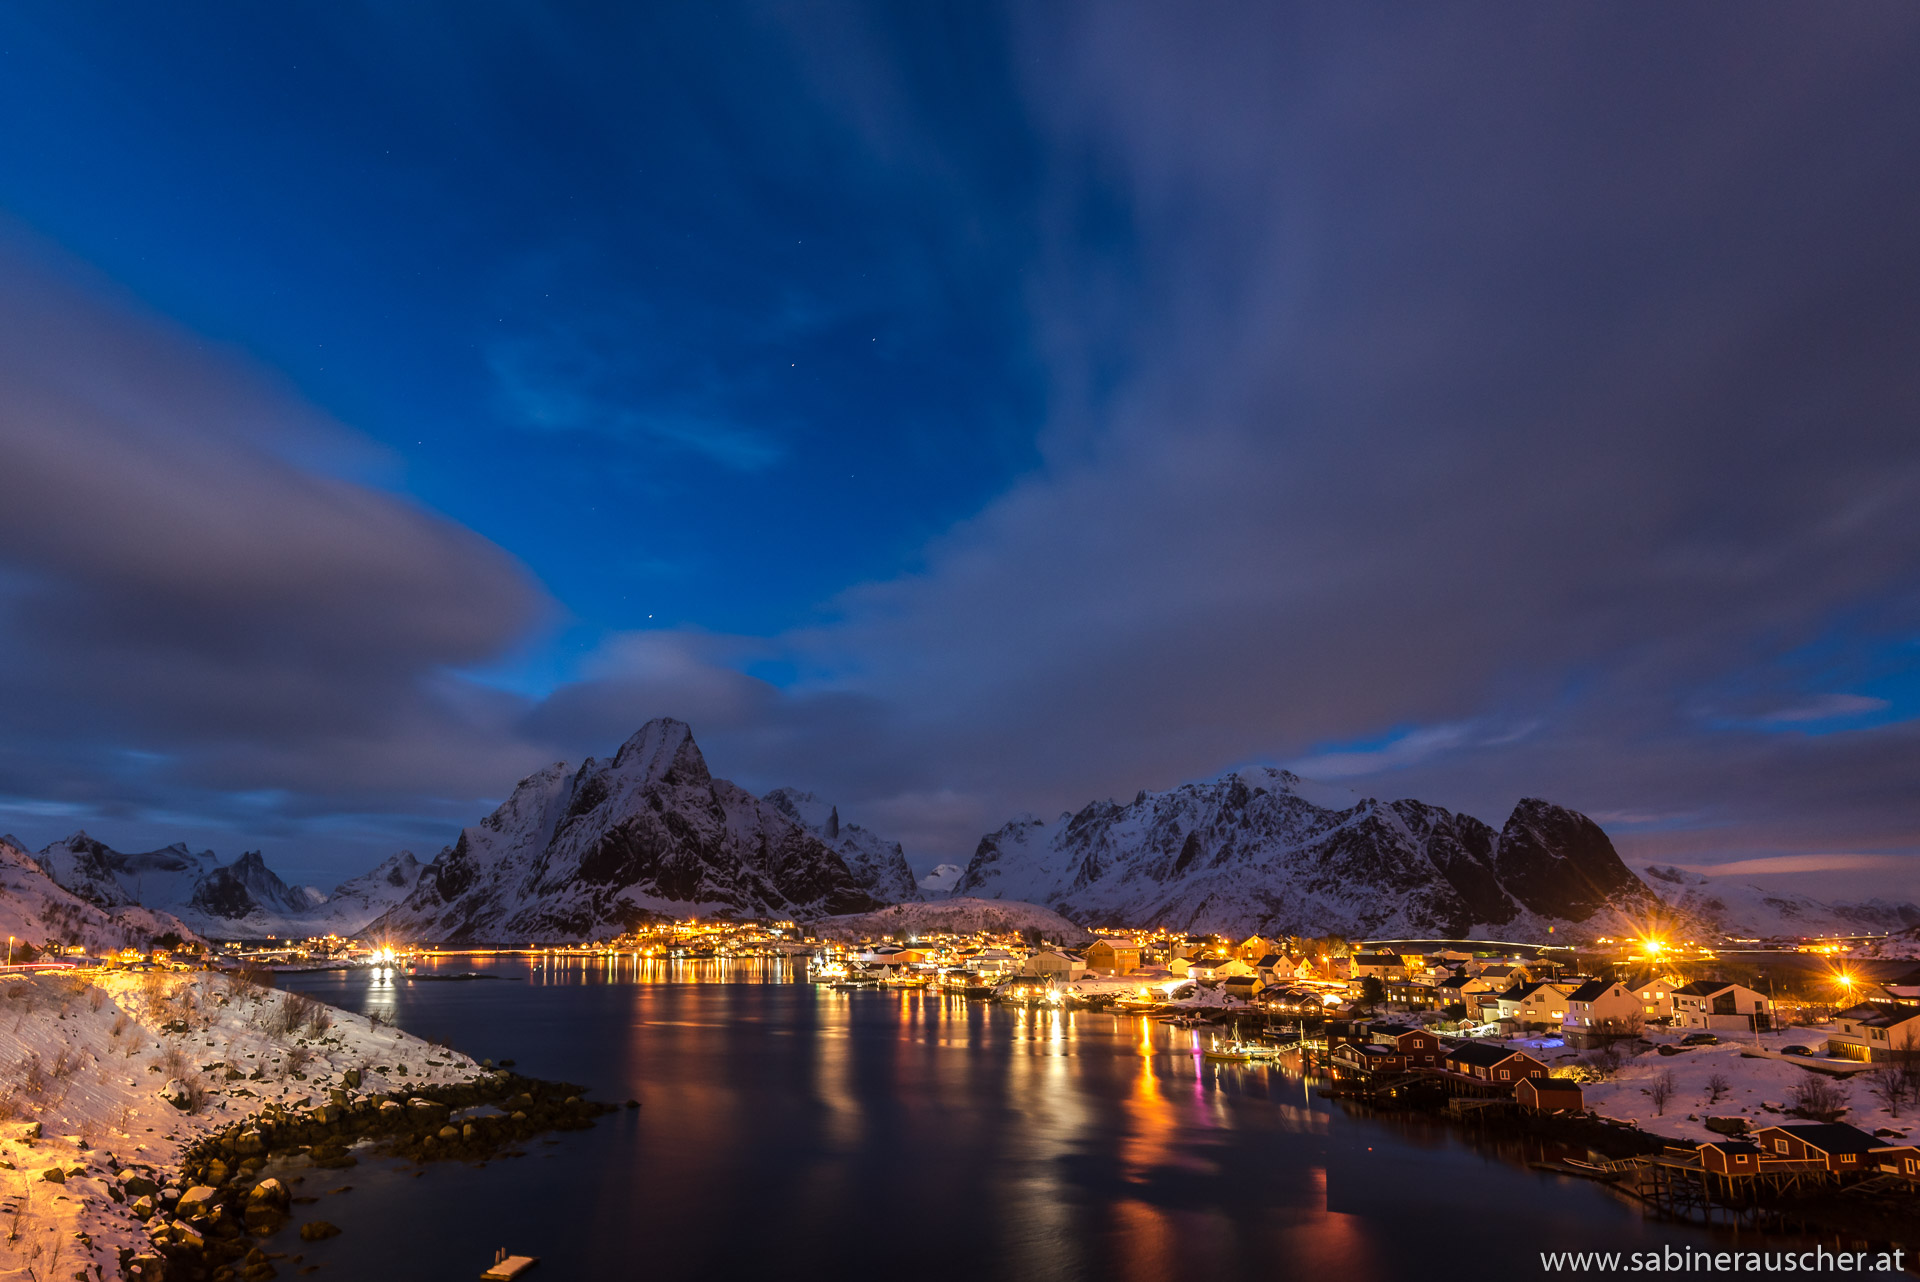 Skyline of Reine in the evening | abendliche Skyline von Reine